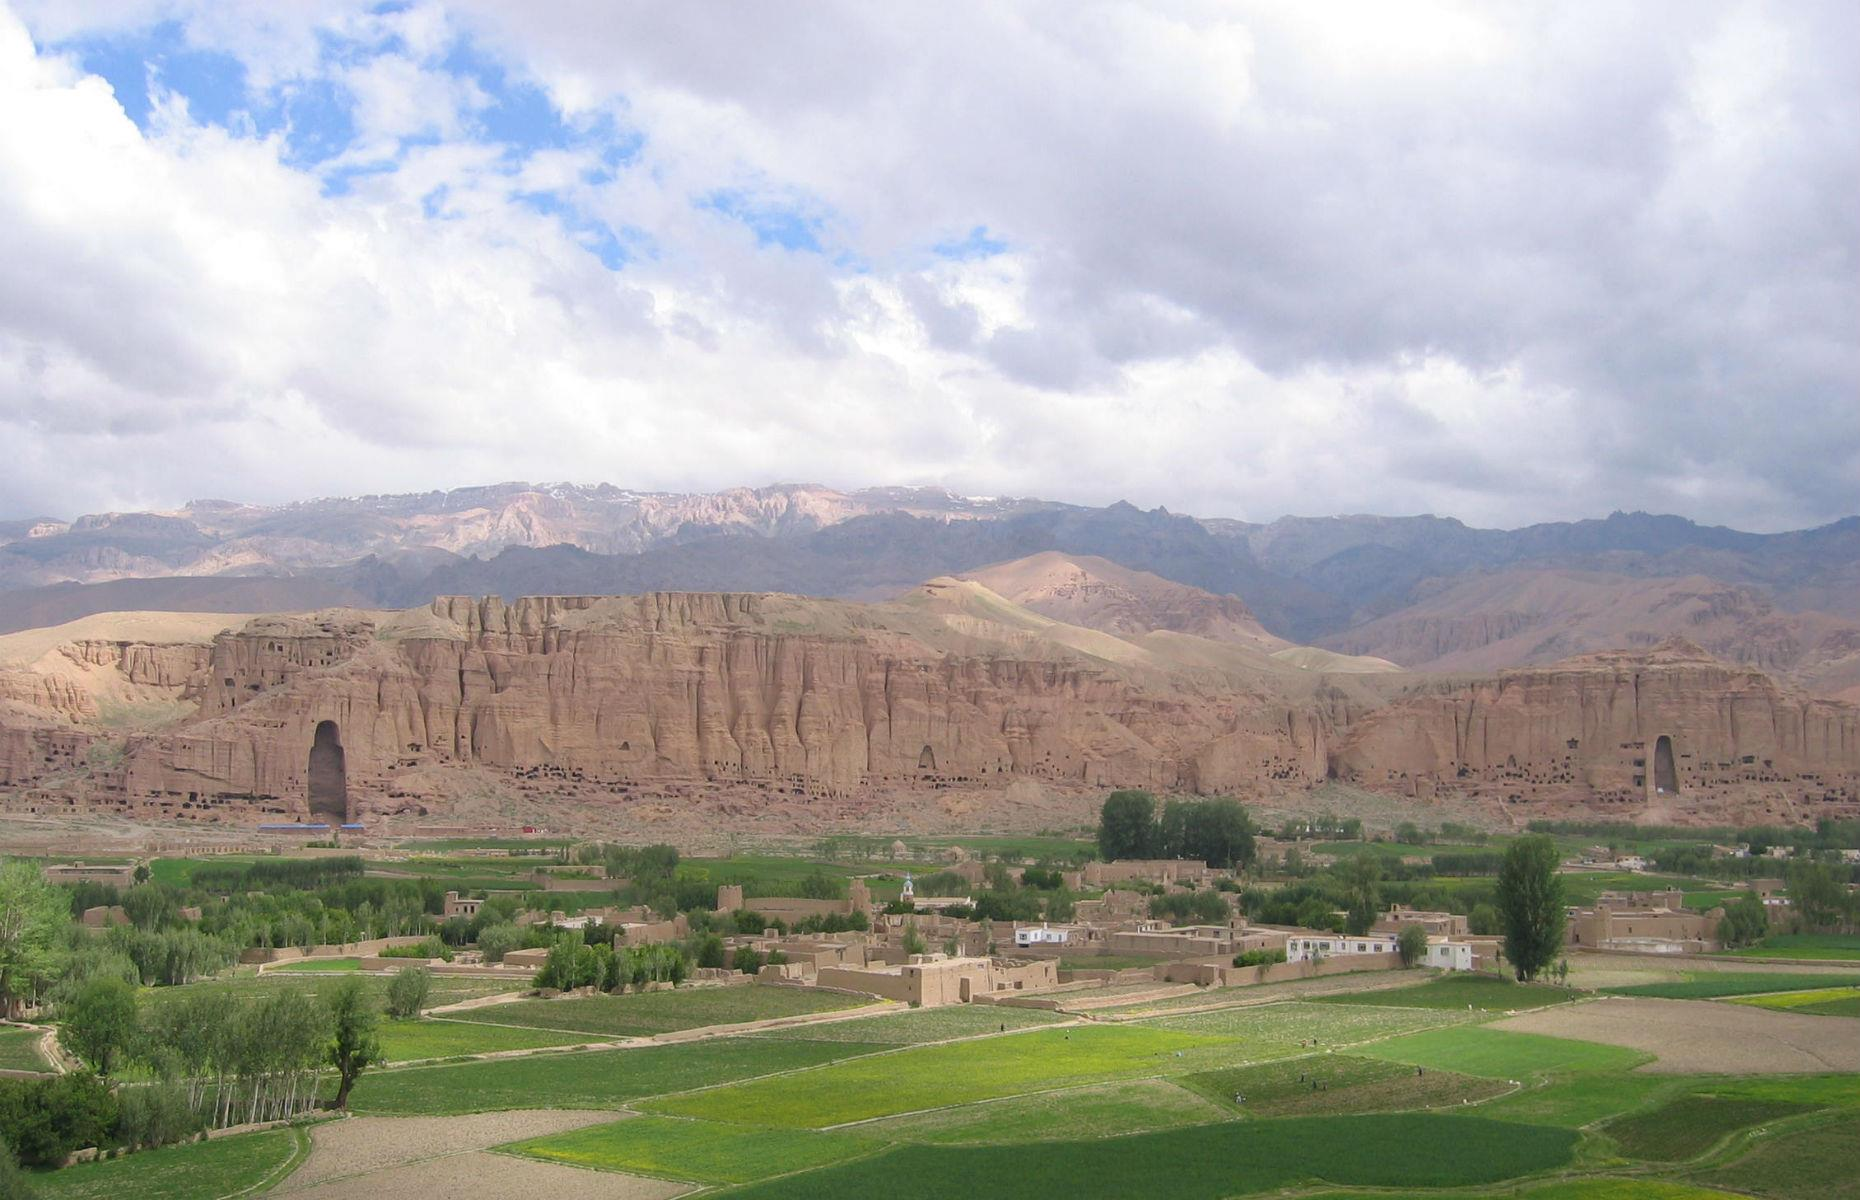 Slide 2 of 53: The archaeological remains of the Bamiyan Valley, containing fortified buildings from the Islamic period as well as Buddhist monastic ensembles and sanctuaries, are one of Afghanistan's most significant sites. However, the area has been shaken by political unrest and terrorism; in 2001 the two standing Buddha statues – formerly the largest standing Buddha carvings in the world – were destroyed by the Taliban. In 2007, two more attacks severely damaged an ancient rock carving of a seated Buddha.